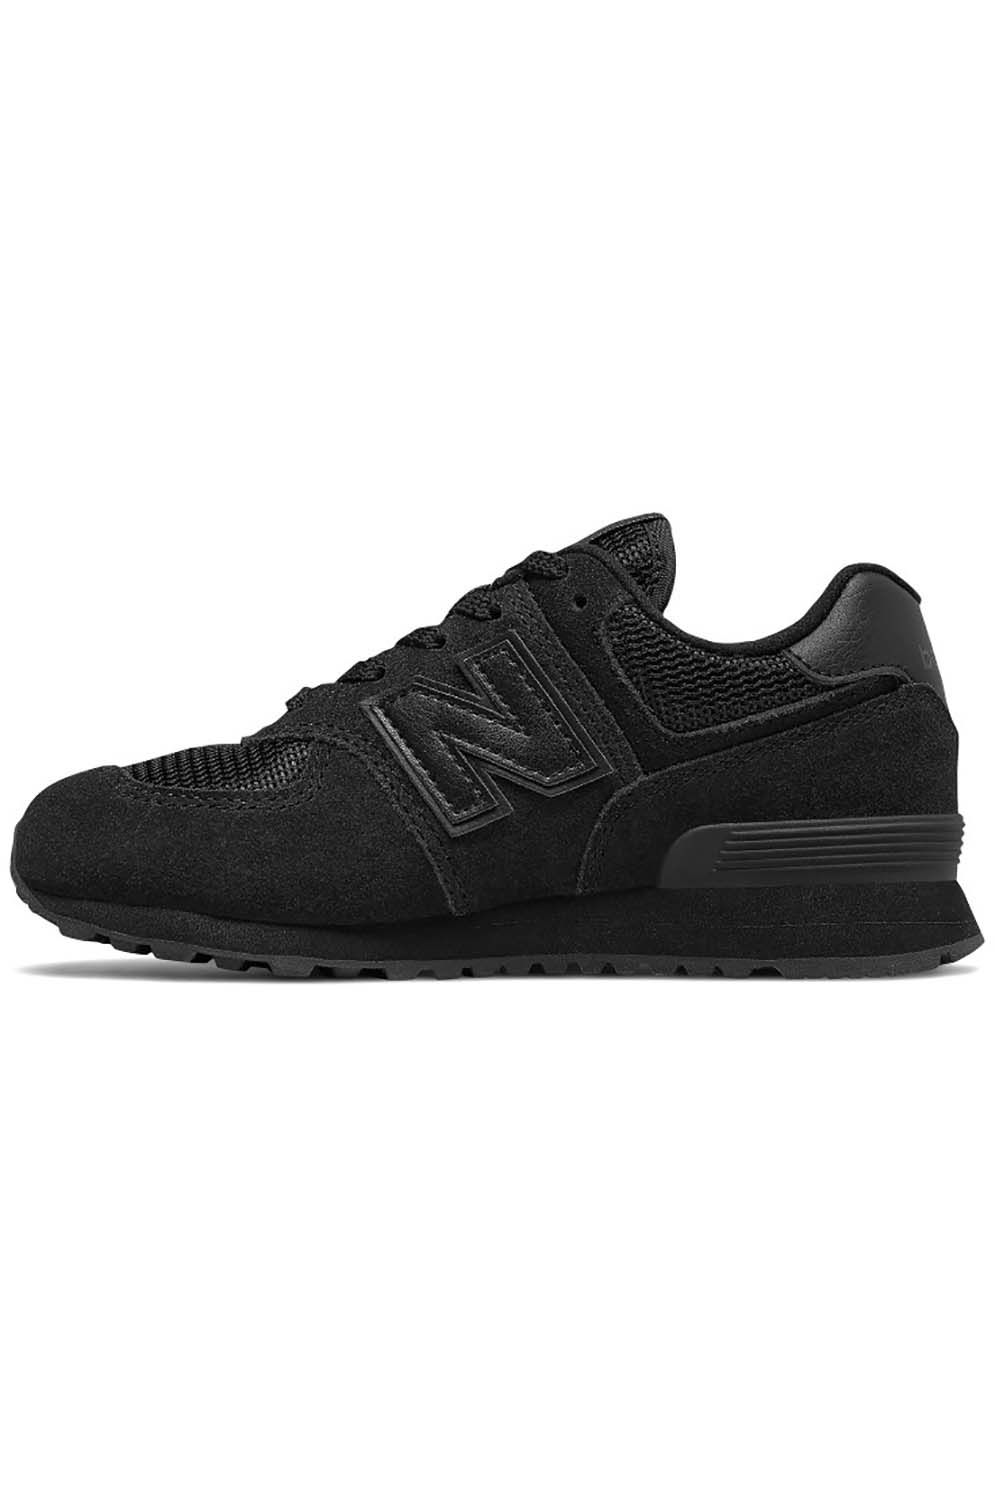 85b42aacabf ... New Balance Shoes GC574 Black Black(911)